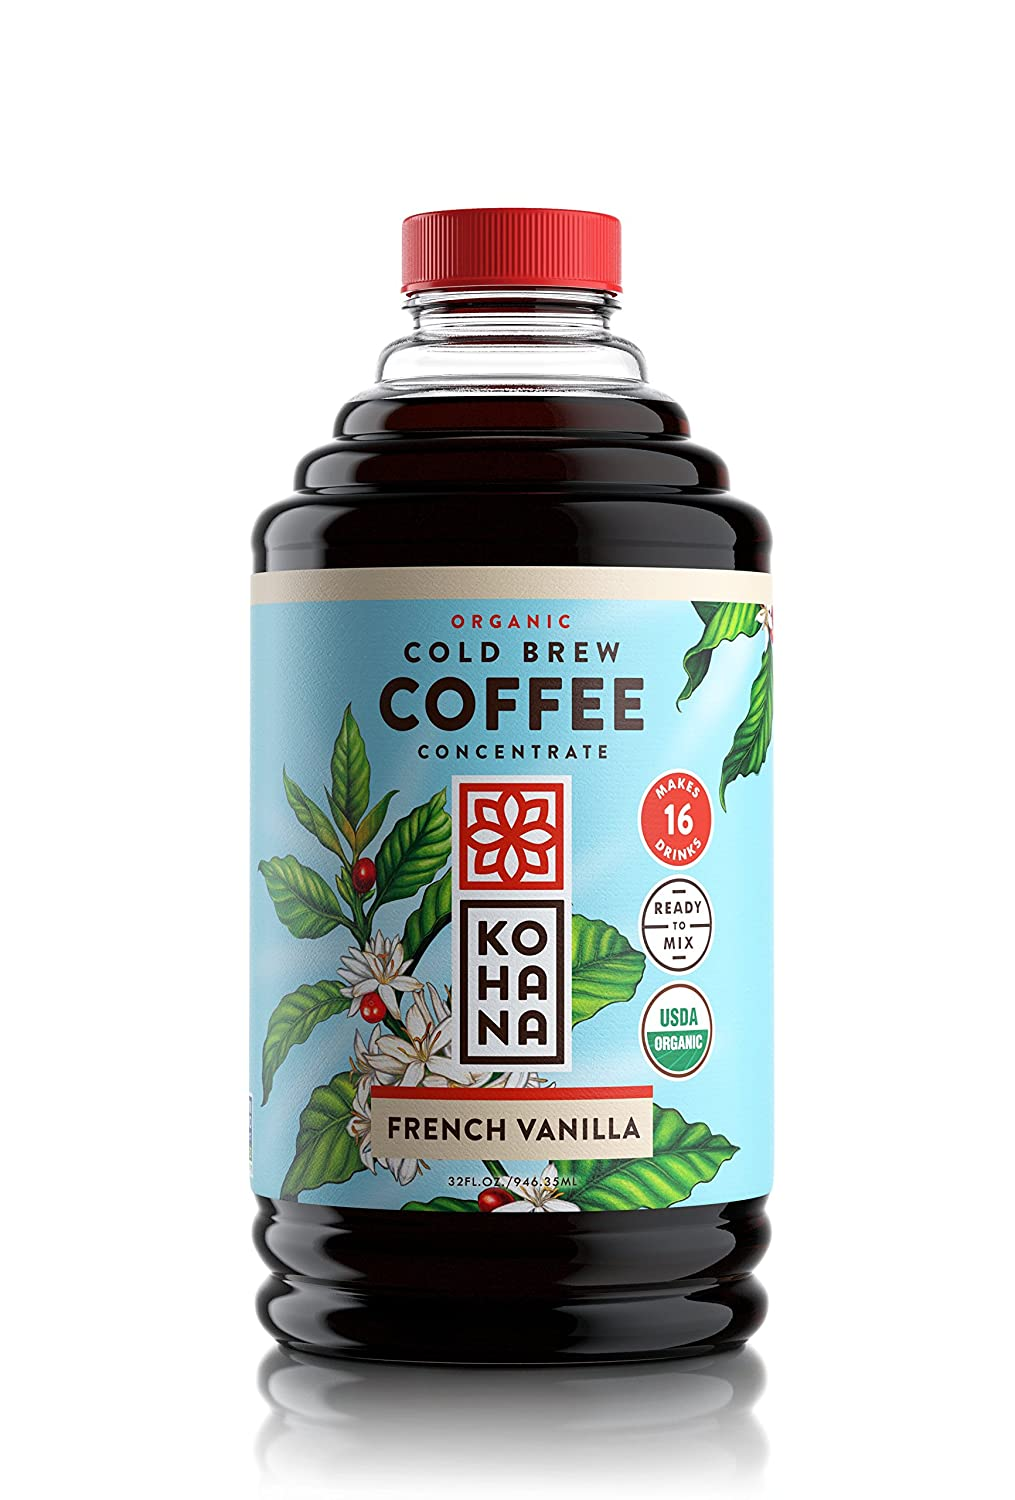 Kohana Cold Brew Coffee Concentrate, Organic, Original, 32 Ounce, Best Zero Calorie Low Acid Iced Coffee, Instant, Convenient and On The Go, Makes 16 Drinks, Single Bottle Kohana Coffee TRTAZ11A